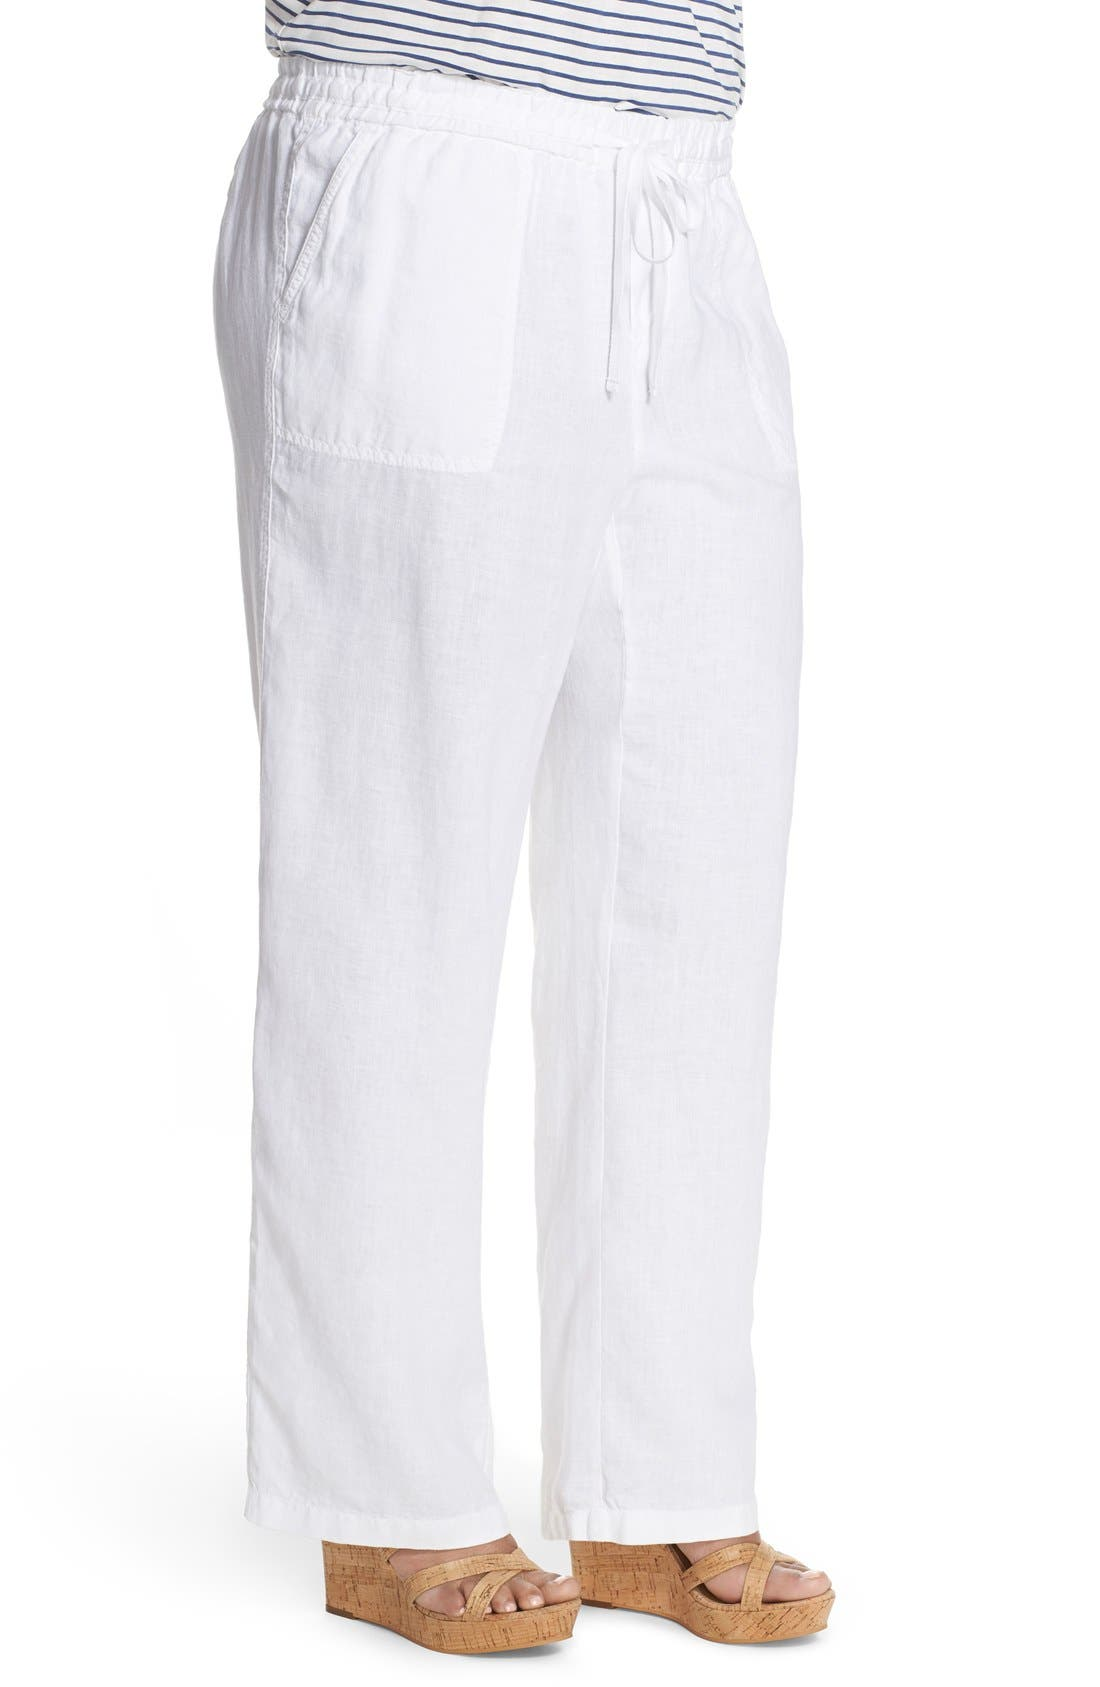 Drawstring Linen Pants,                             Alternate thumbnail 3, color,                             100